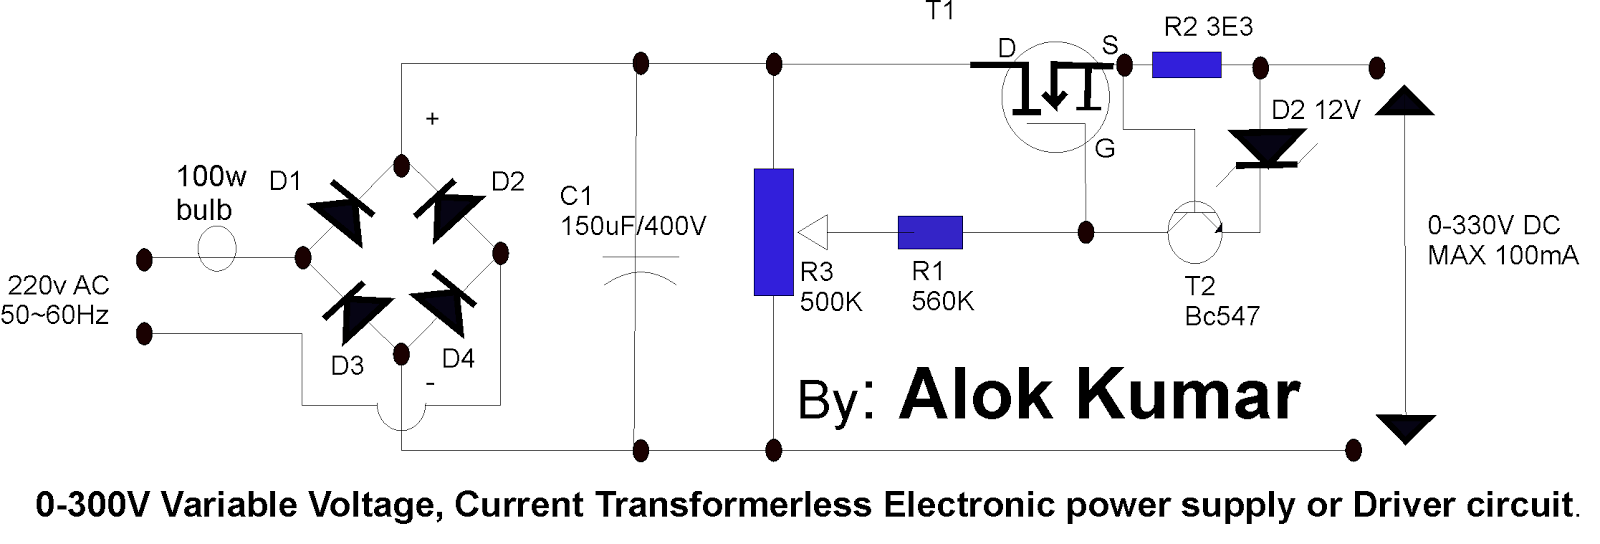 electronic circuits transformerless power supply led drivers battery chargers solar circuits [ 1600 x 544 Pixel ]